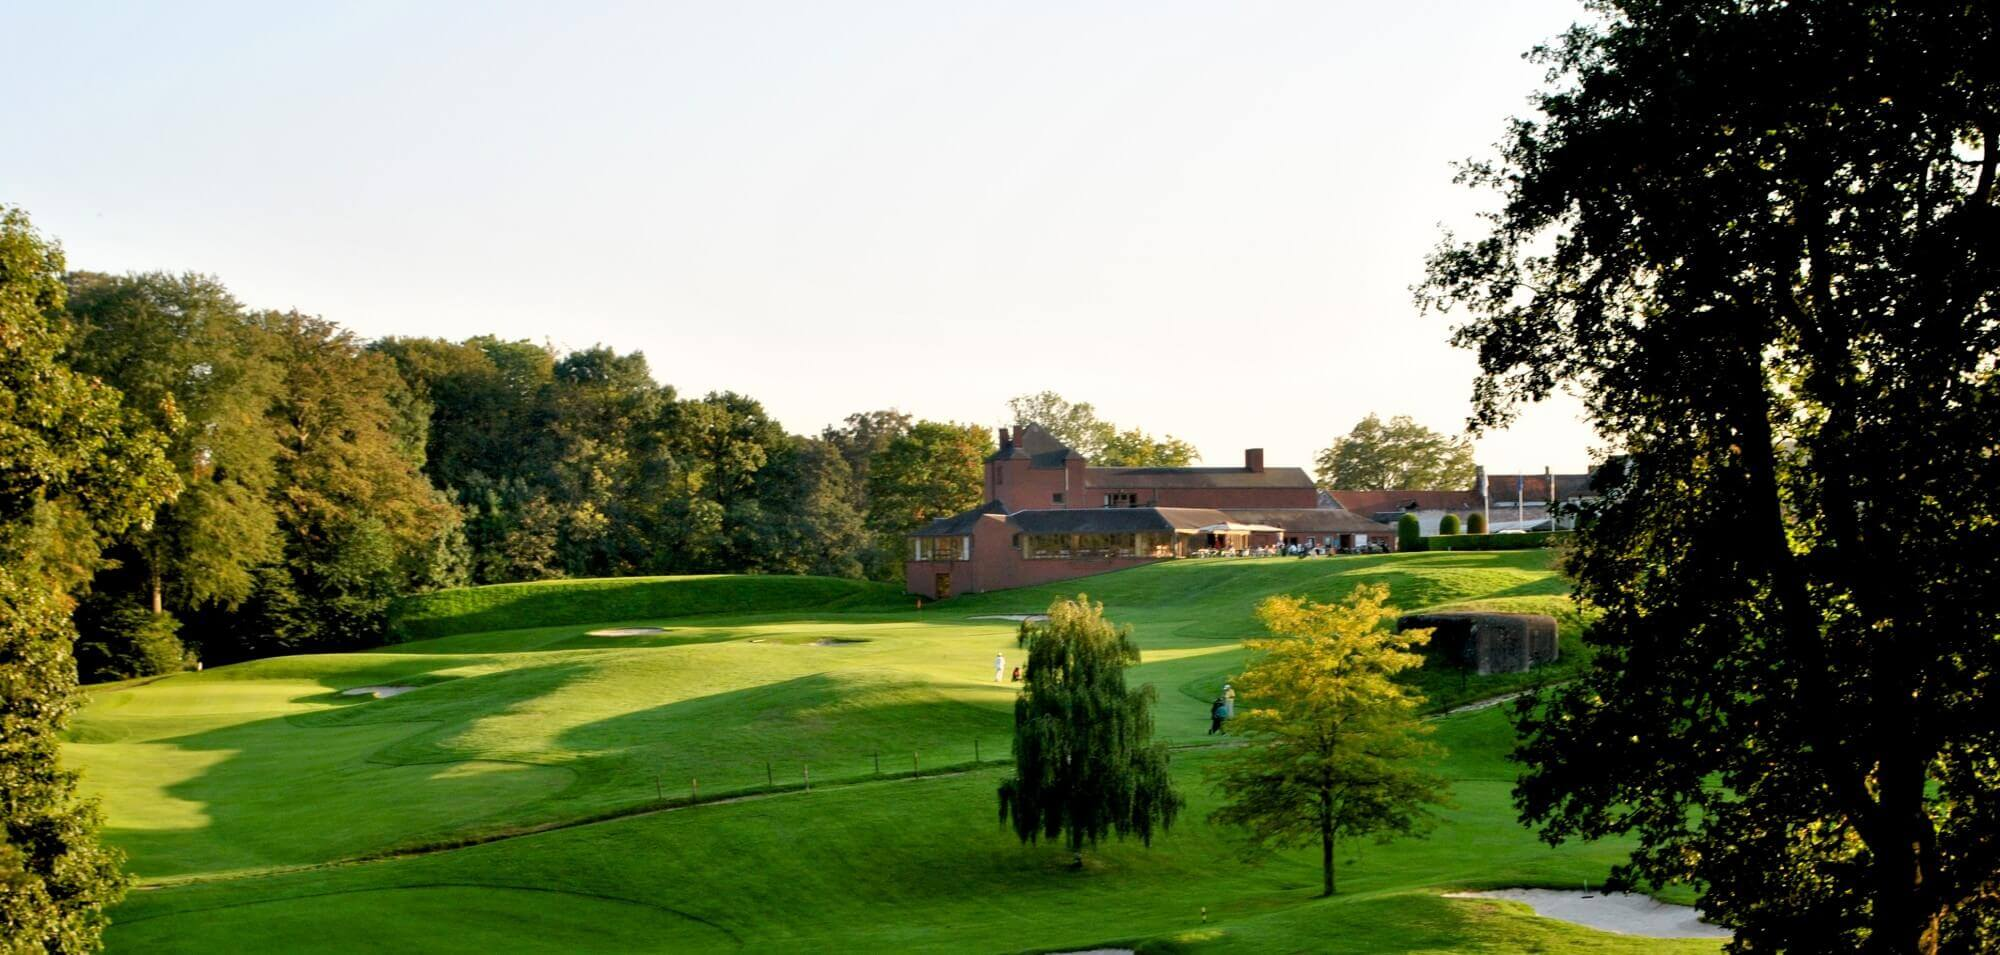 Golf du Chateau de la Bawette, Walloon Brabant